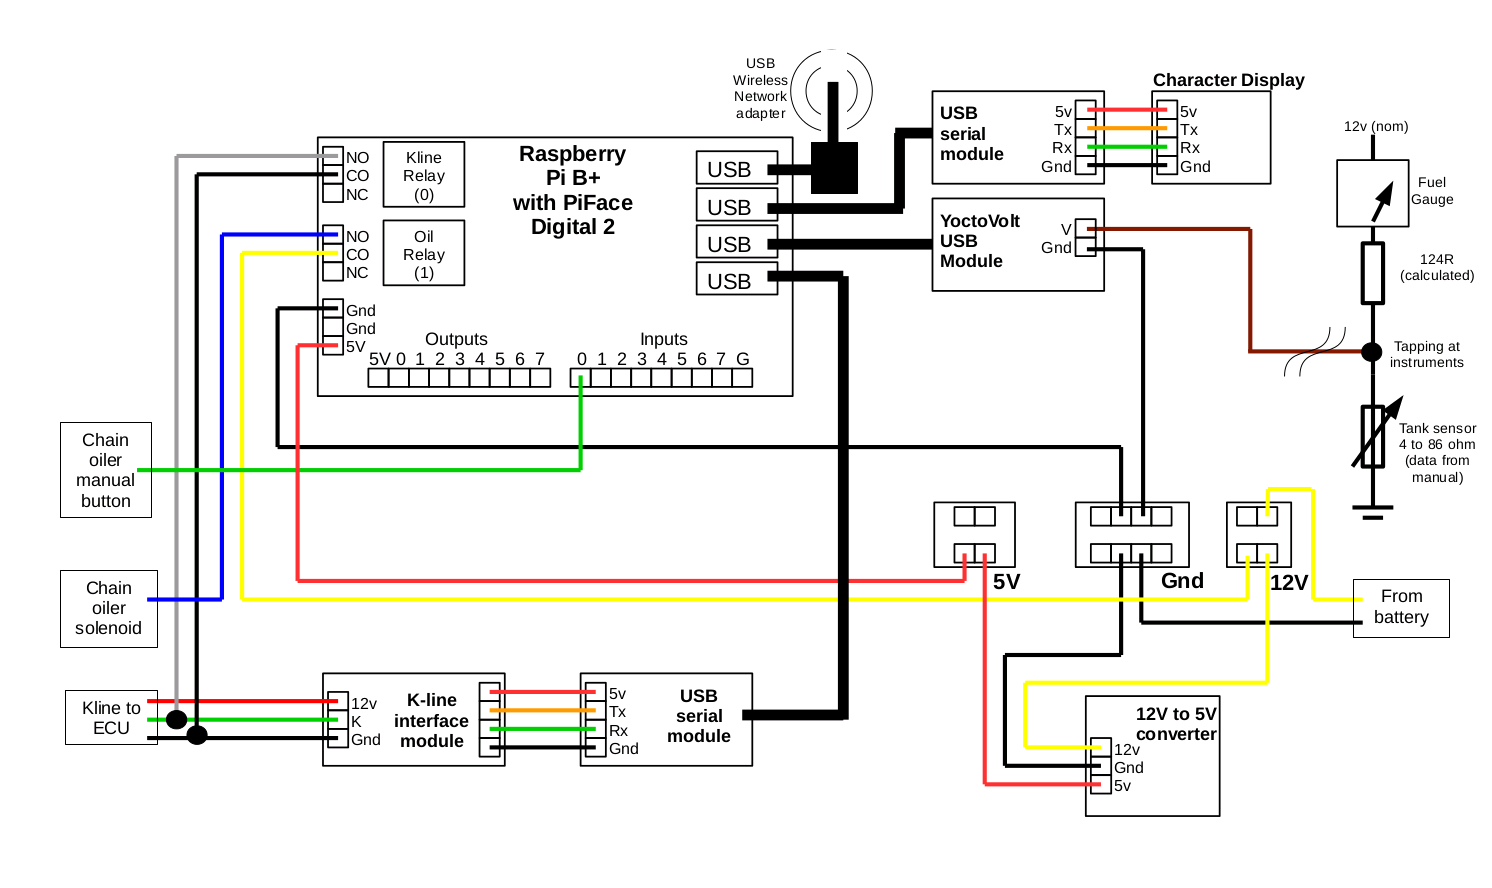 Obd2 To Usb Wiring Diagram | Wiring Diagram - Elm327 Usb Wiring Diagram